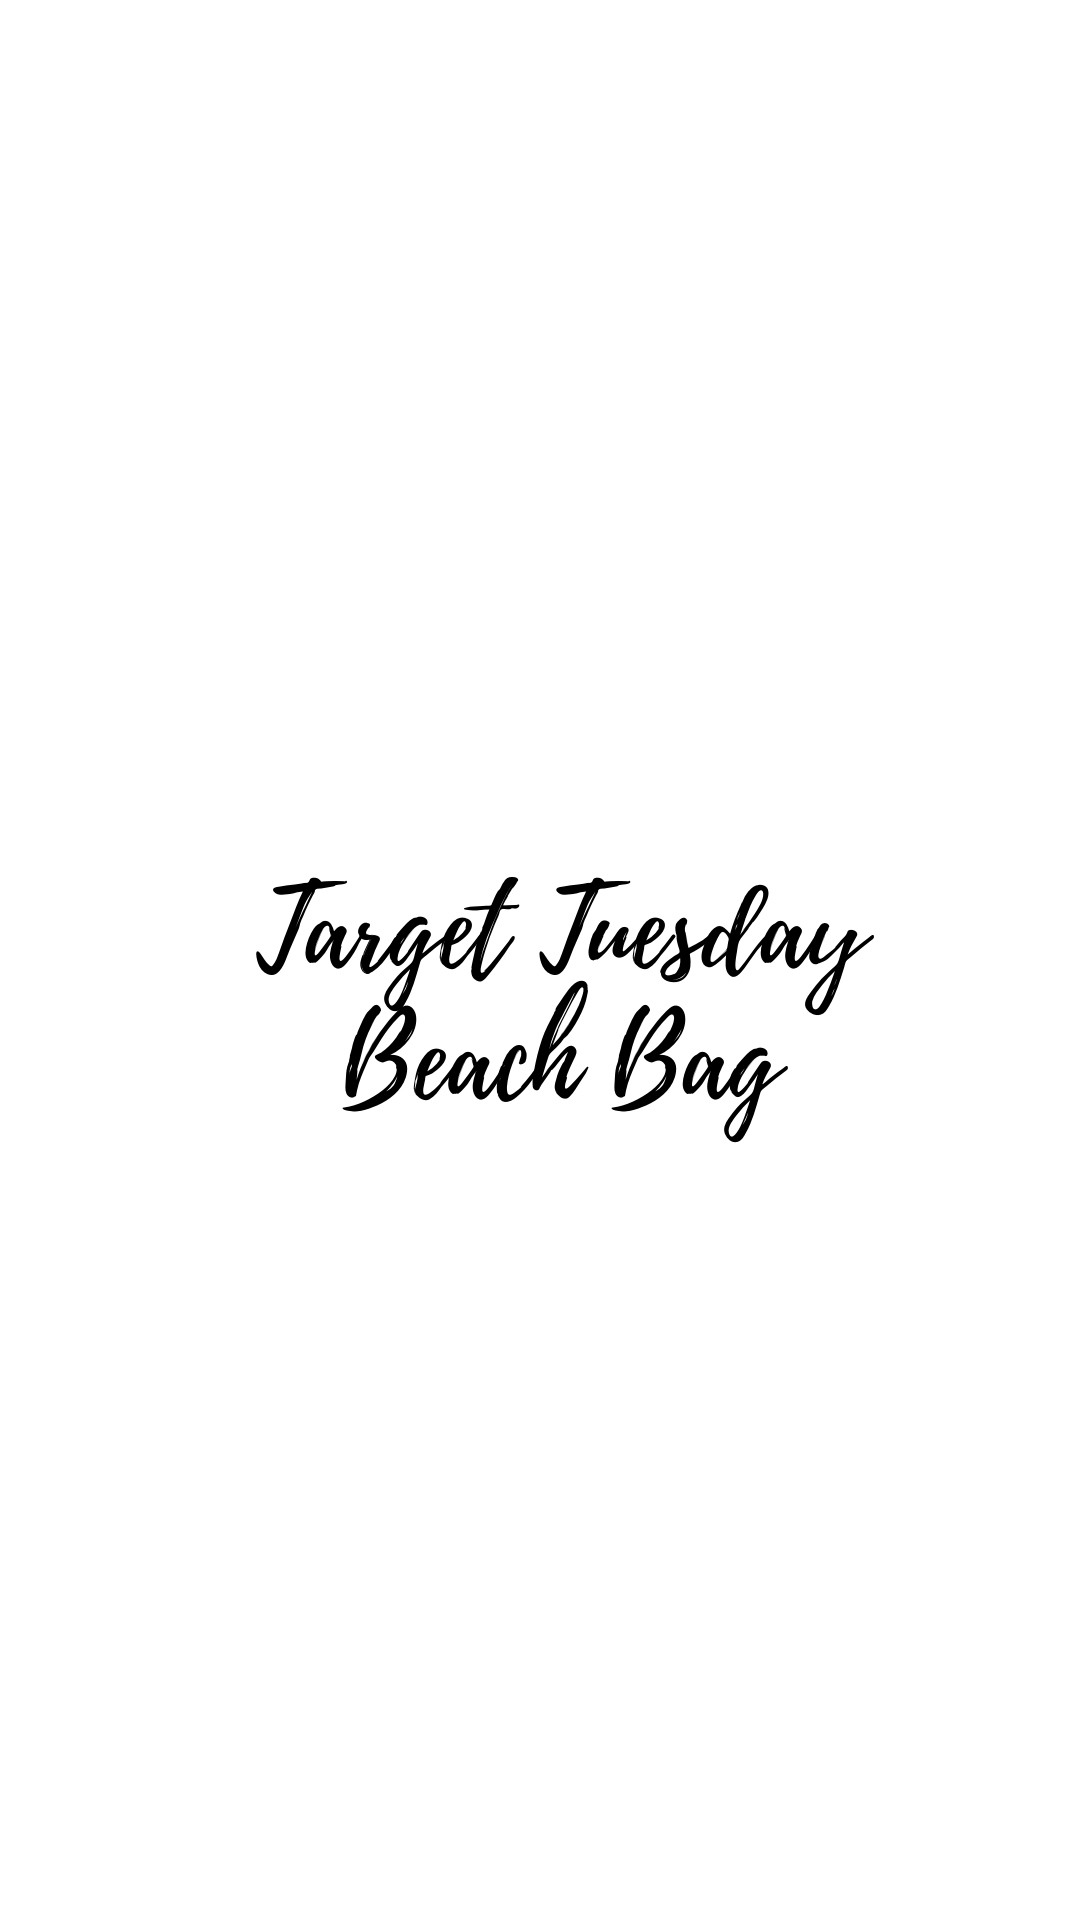 Target Tuesday: Beach Bag!